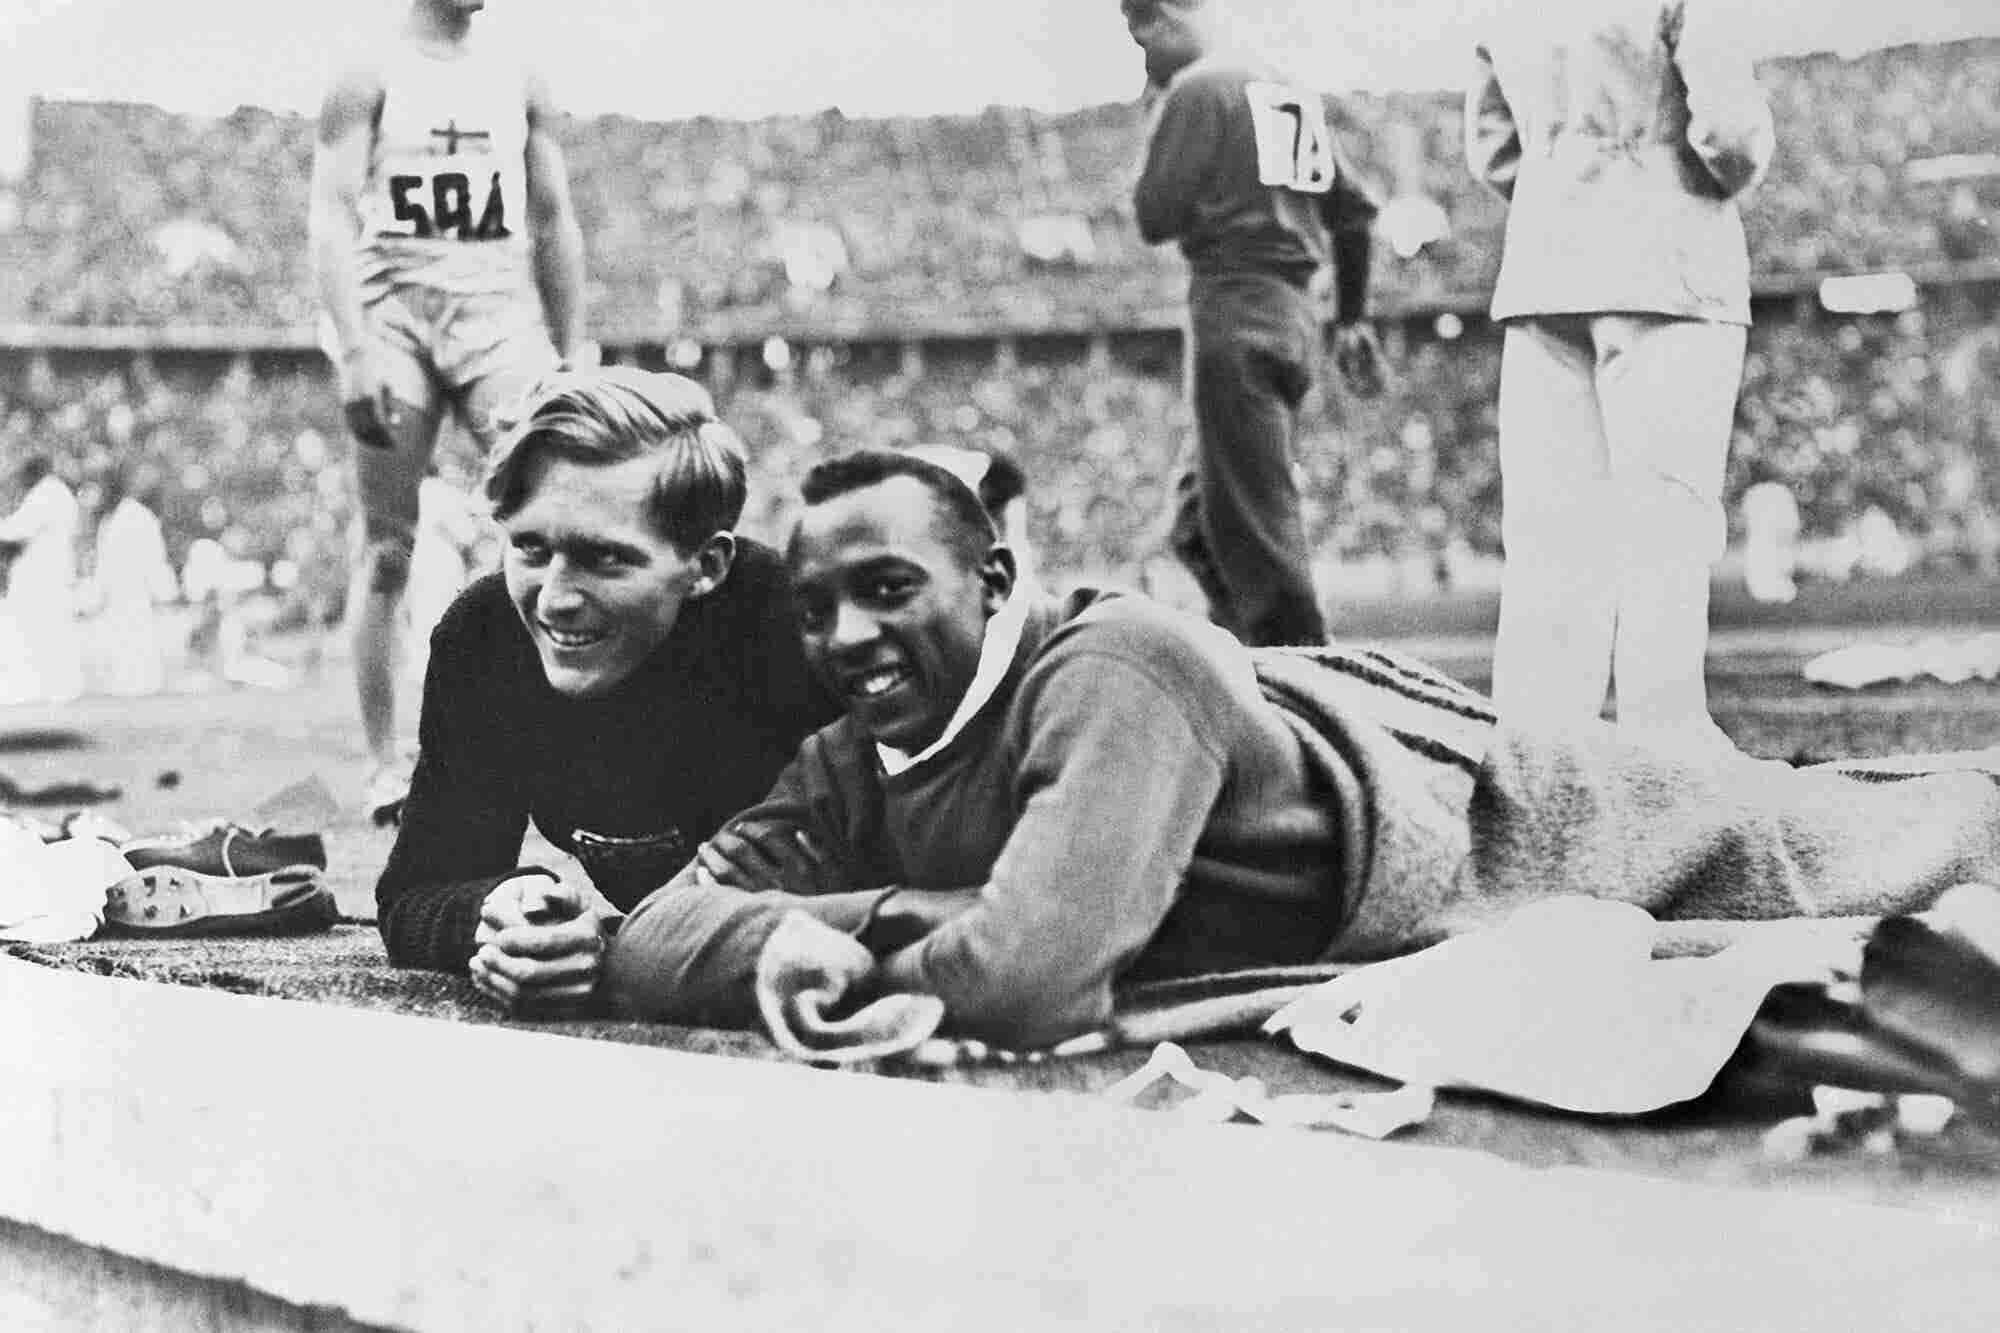 Why Did This German Olympian Help Jesse Owens While Hitler Watched?